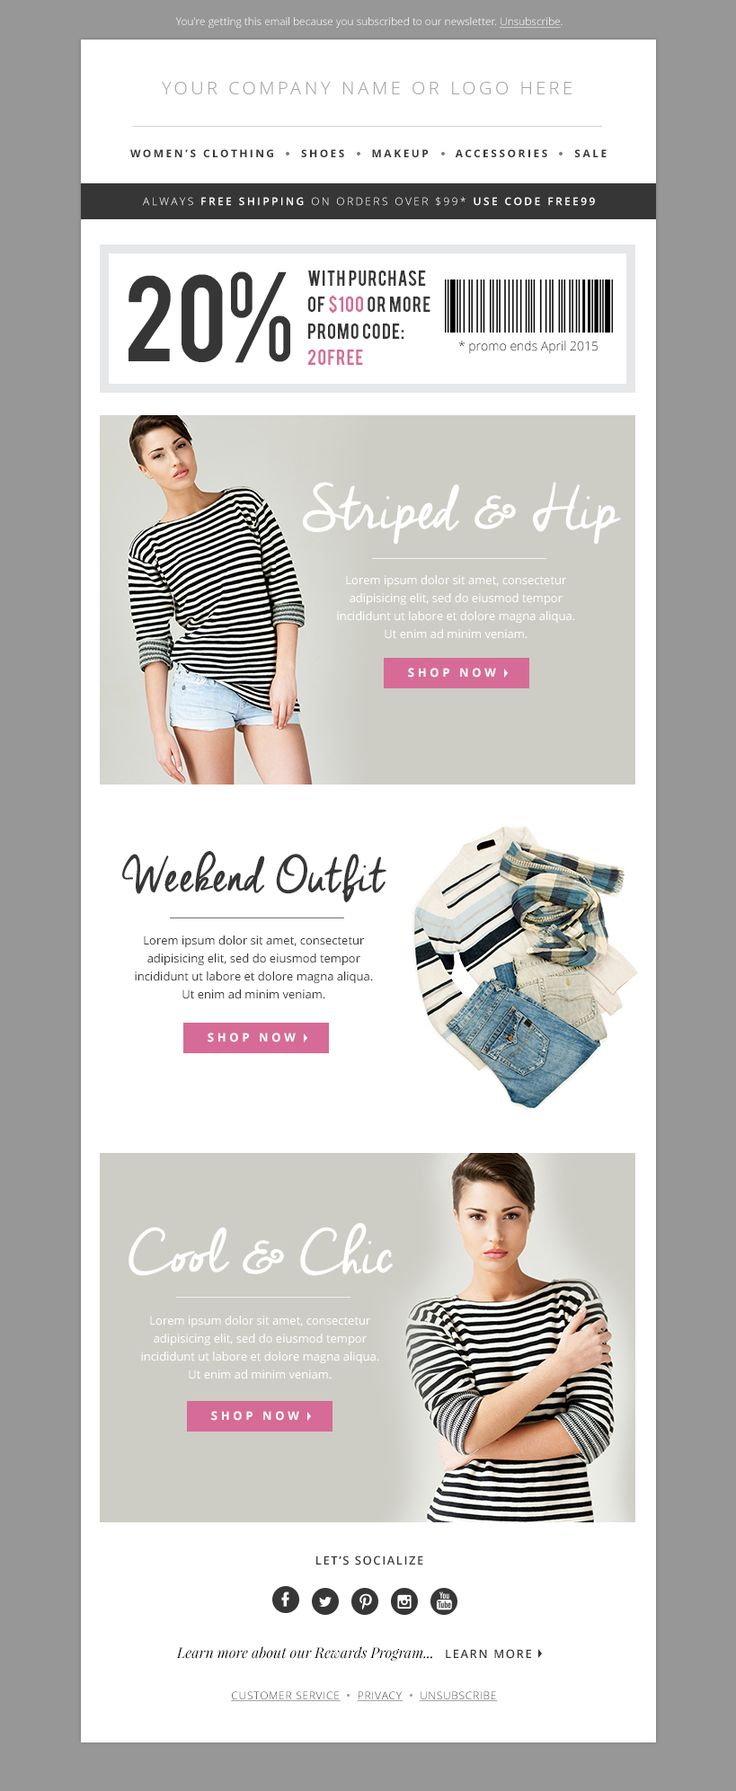 The 81 best Newsletter images on Pinterest | Email templates ...